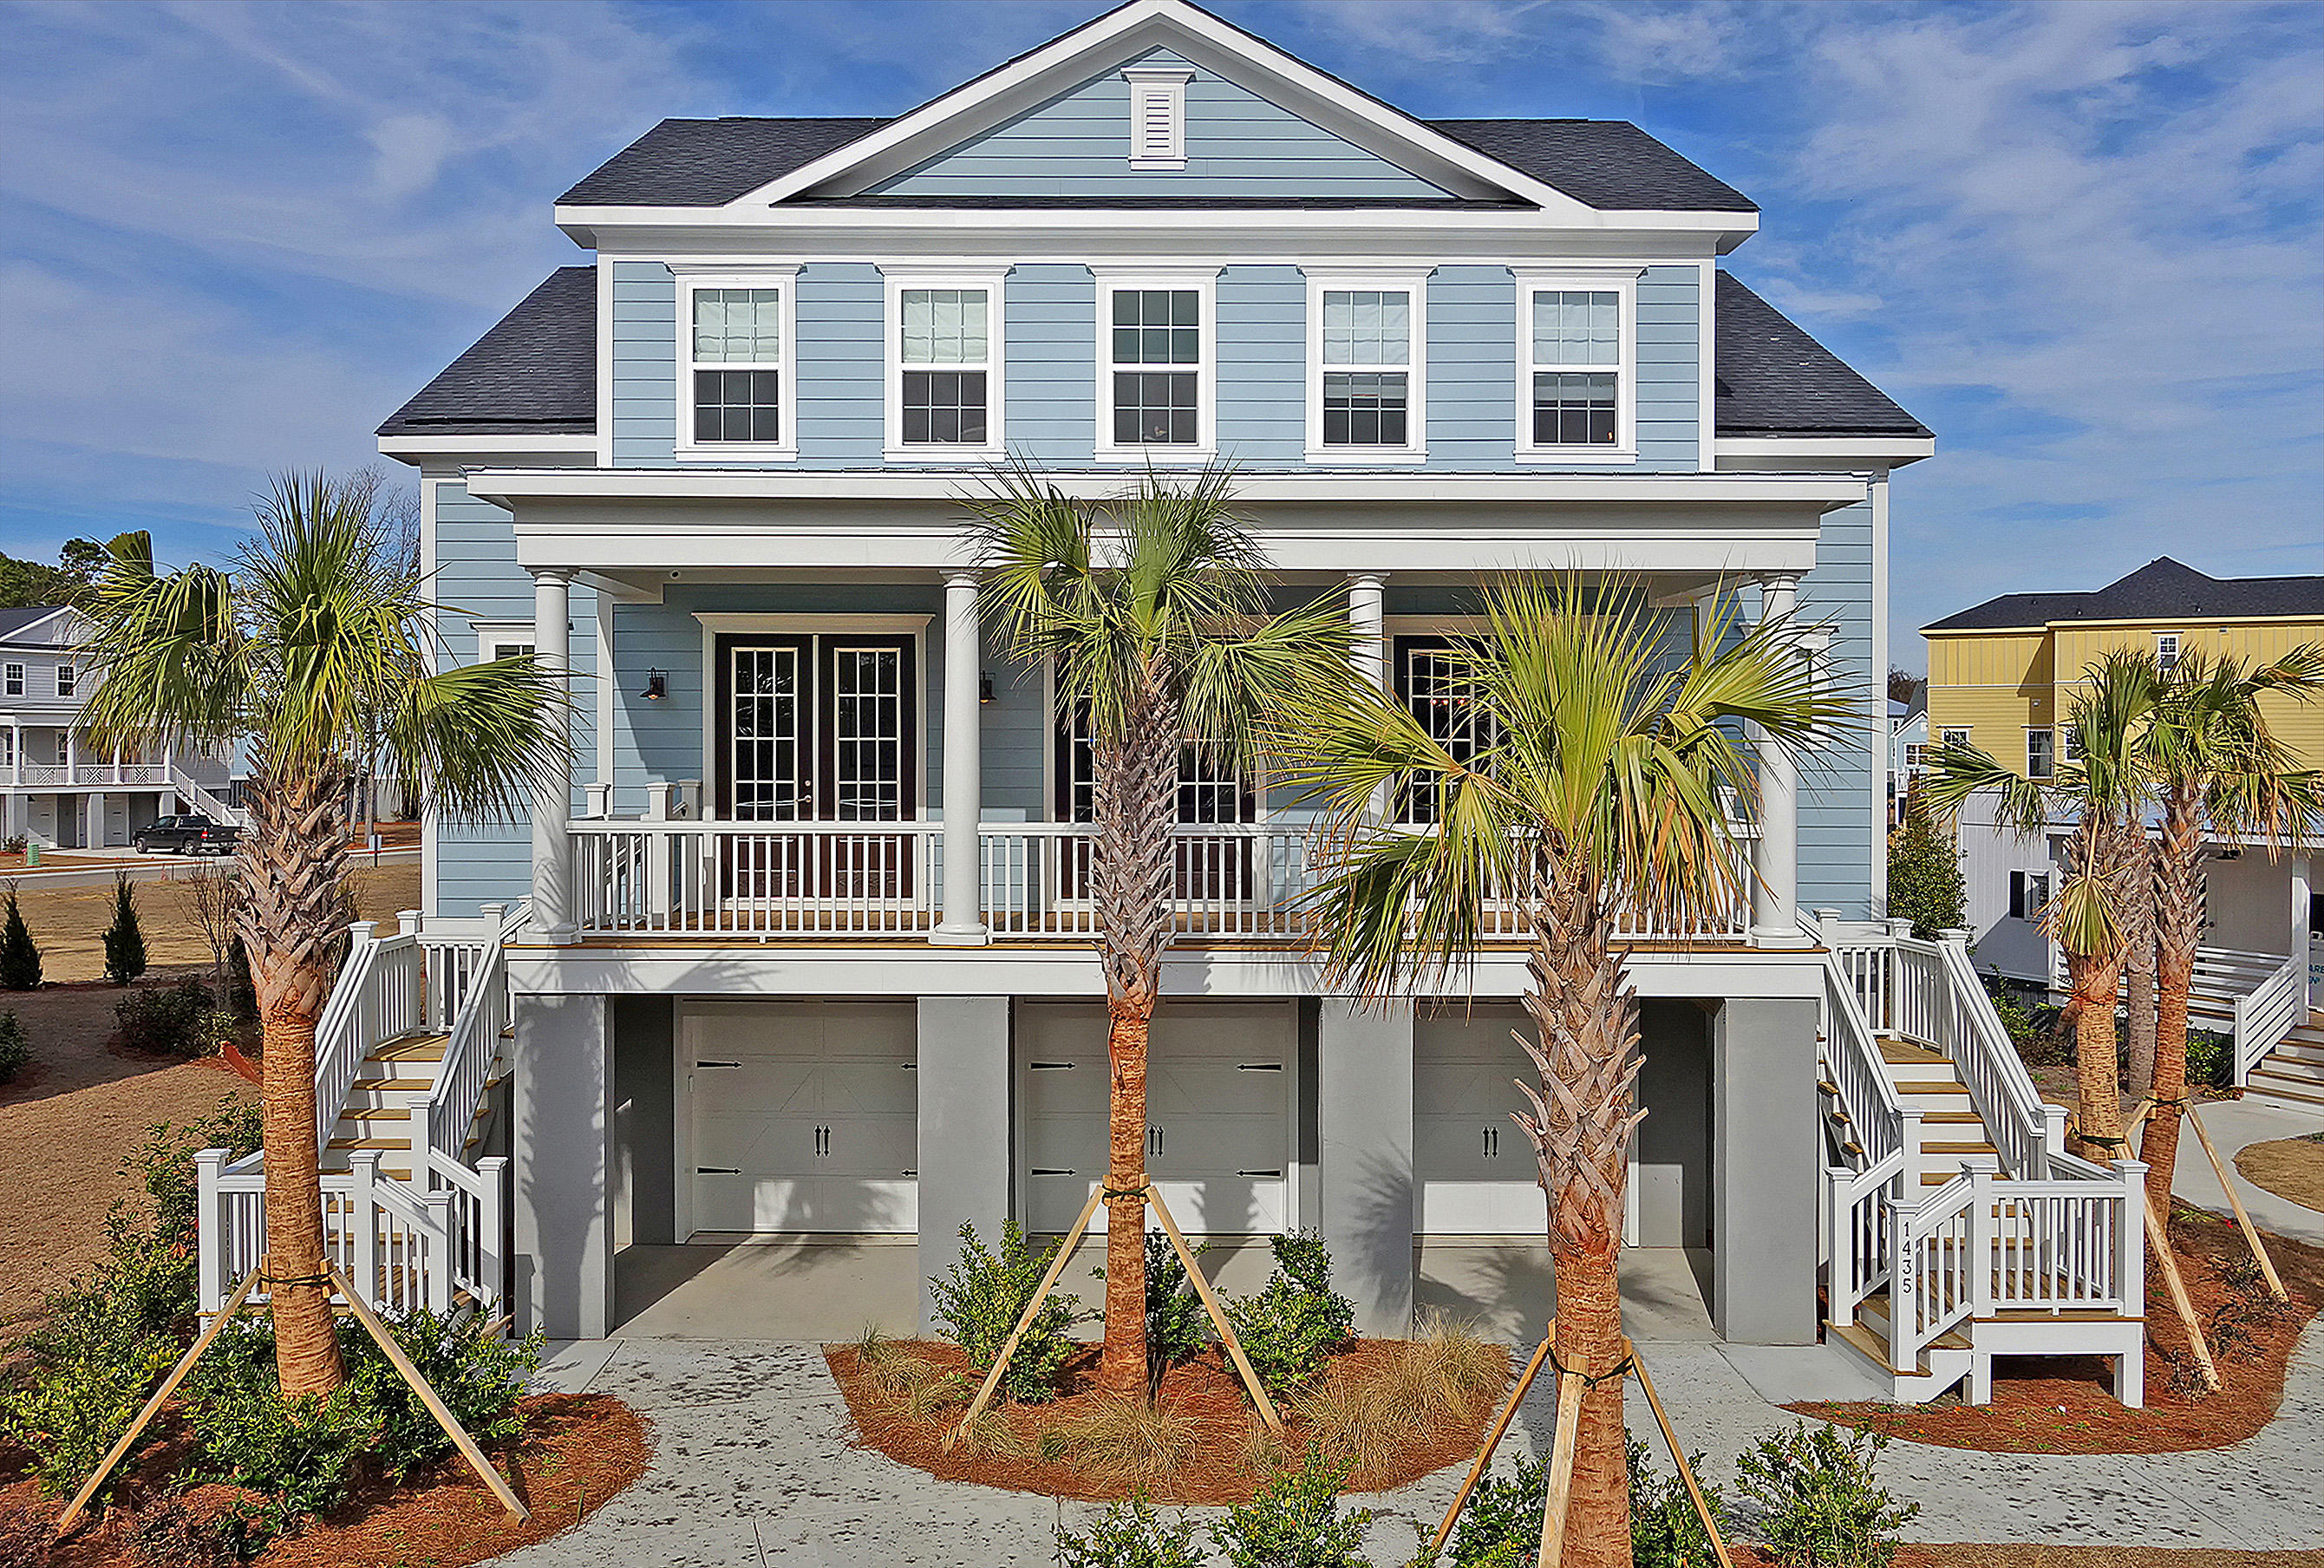 Stratton by the Sound Homes For Sale - 1435 Stratton, Mount Pleasant, SC - 3